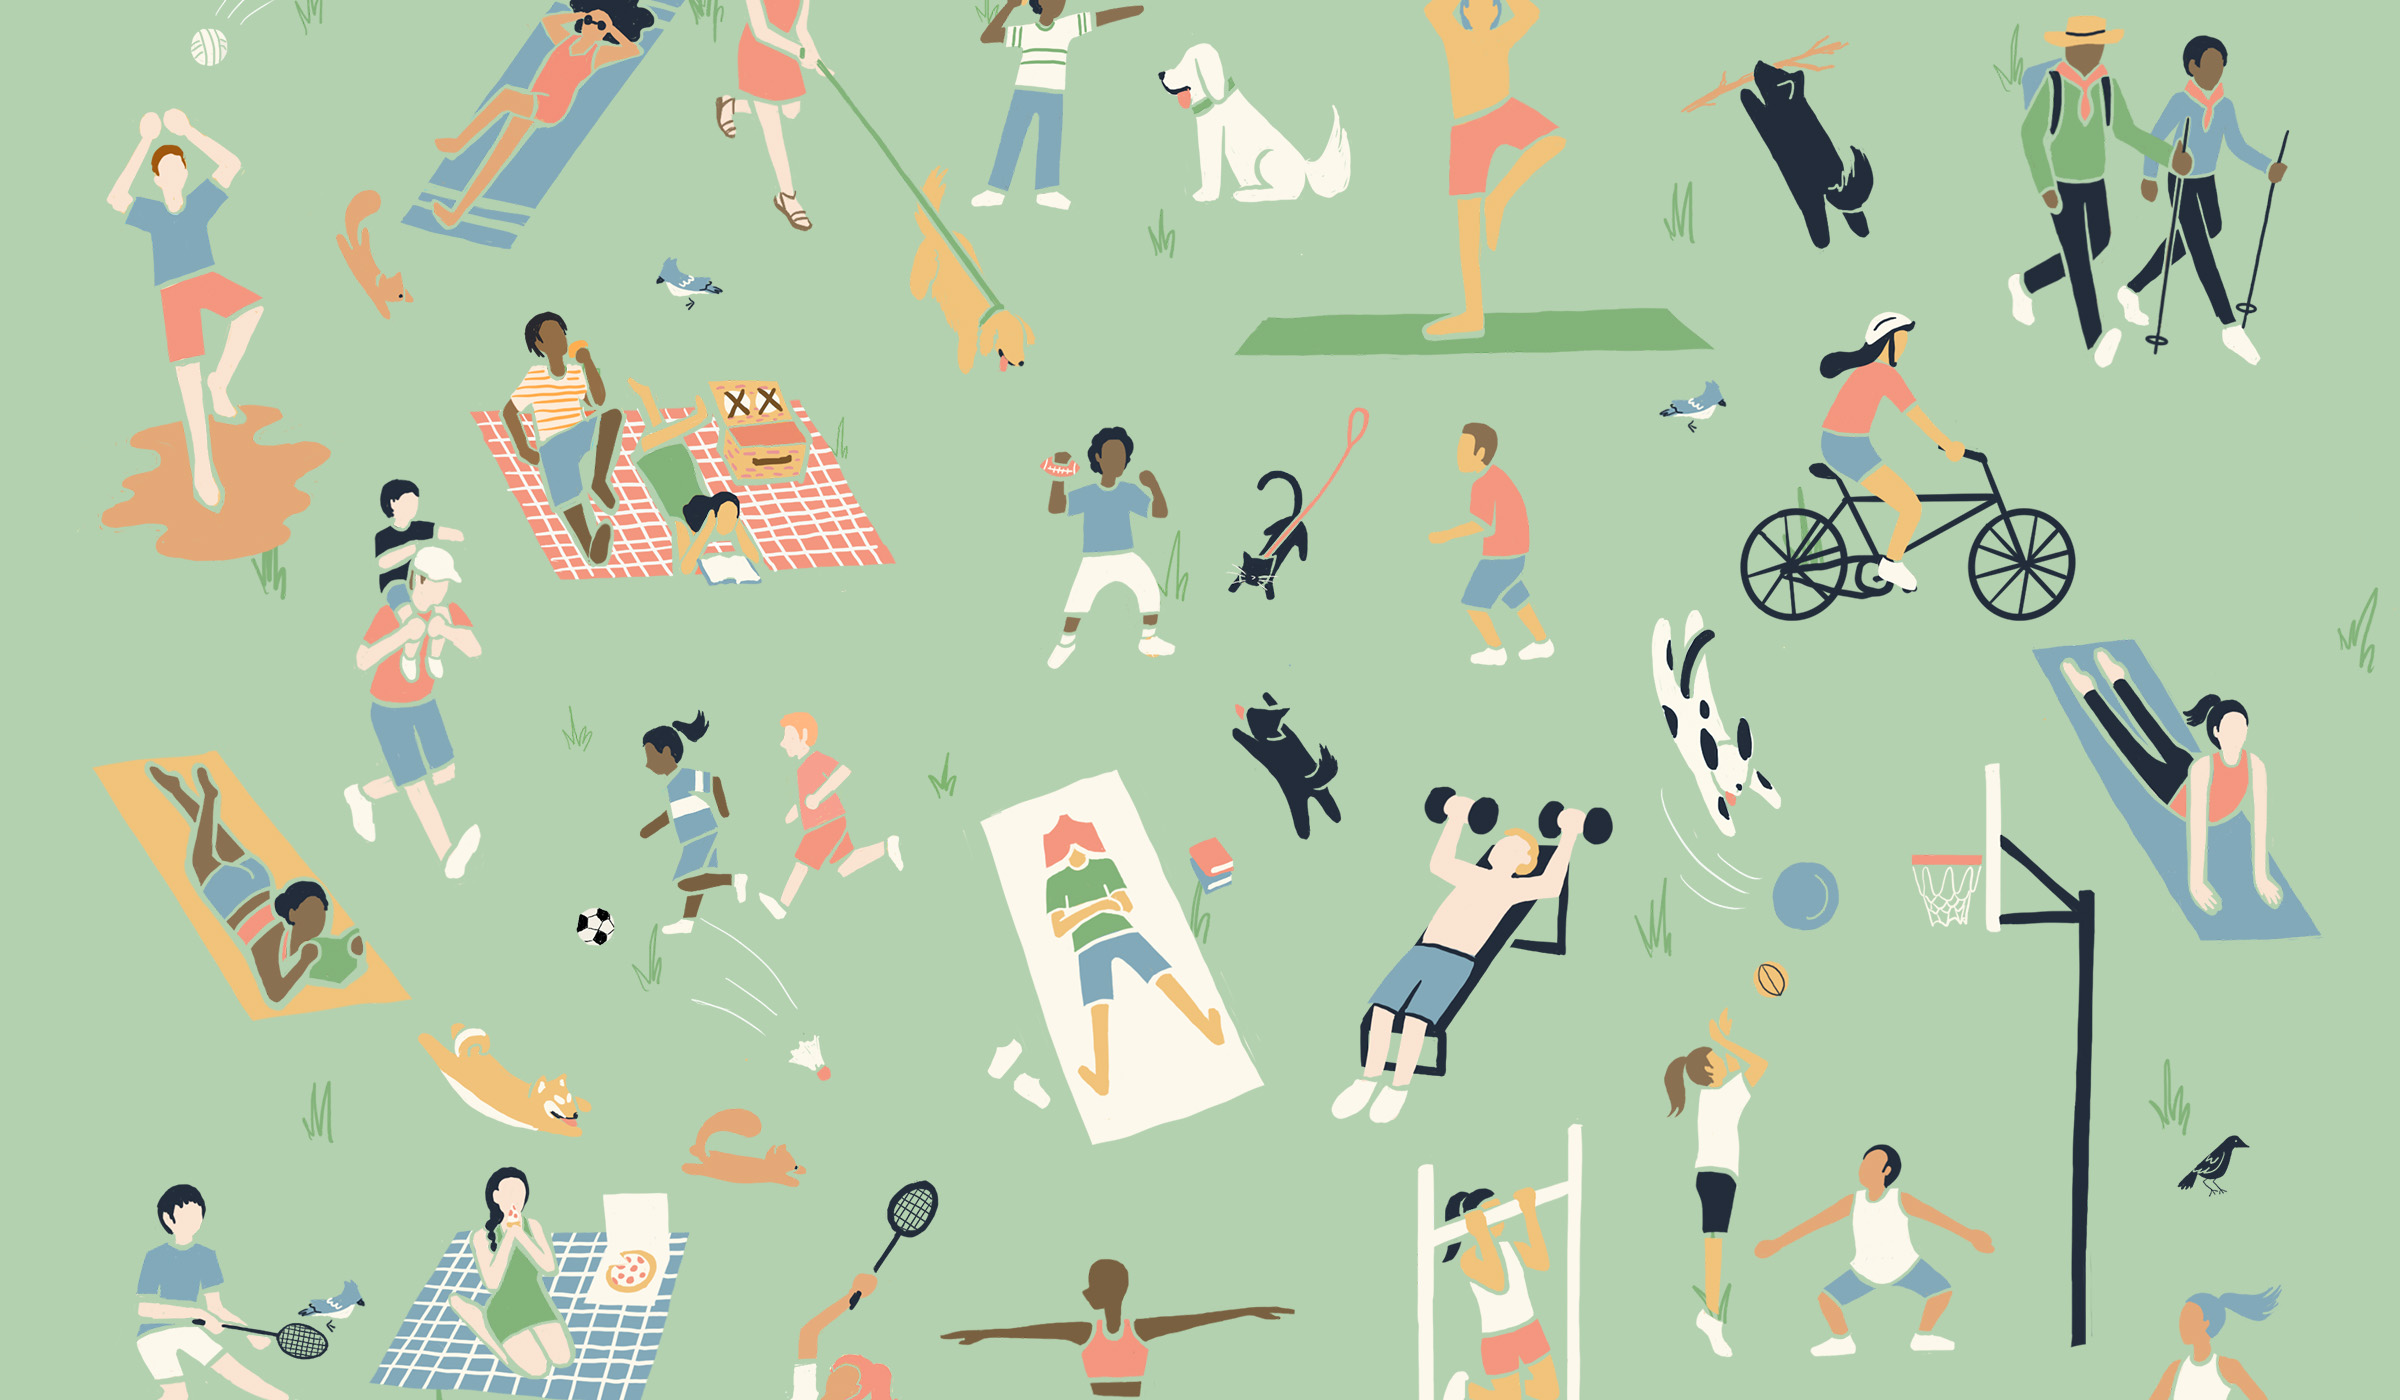 Illustrative pattern of people performing different activities in a park.